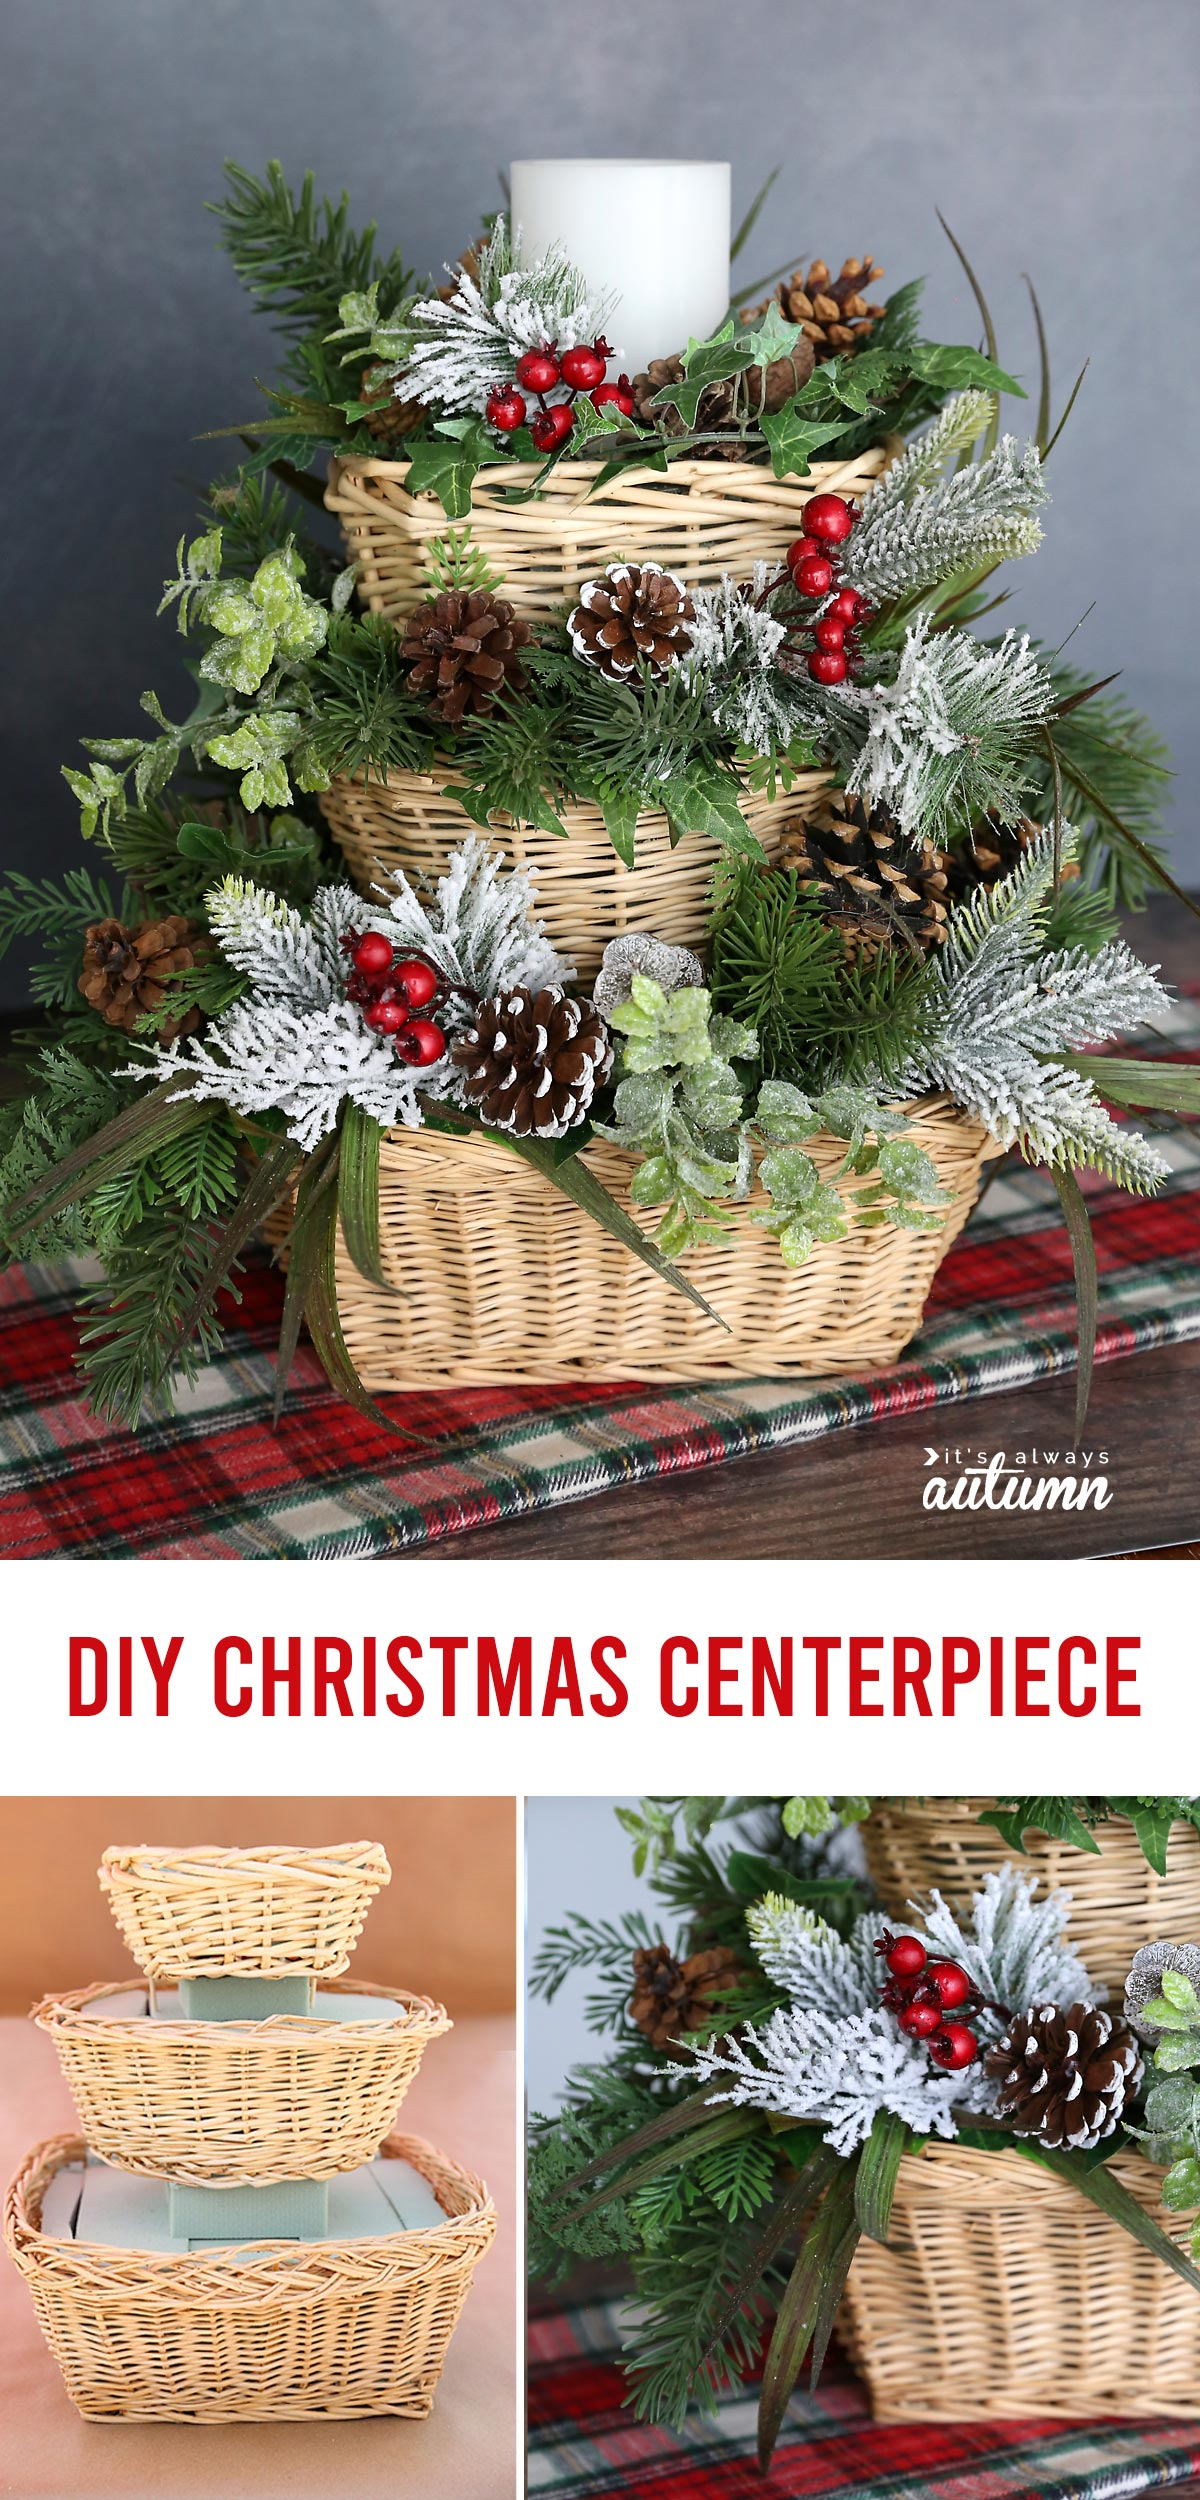 DIY Christmas centerpiece made with three baskets stacked atop each other